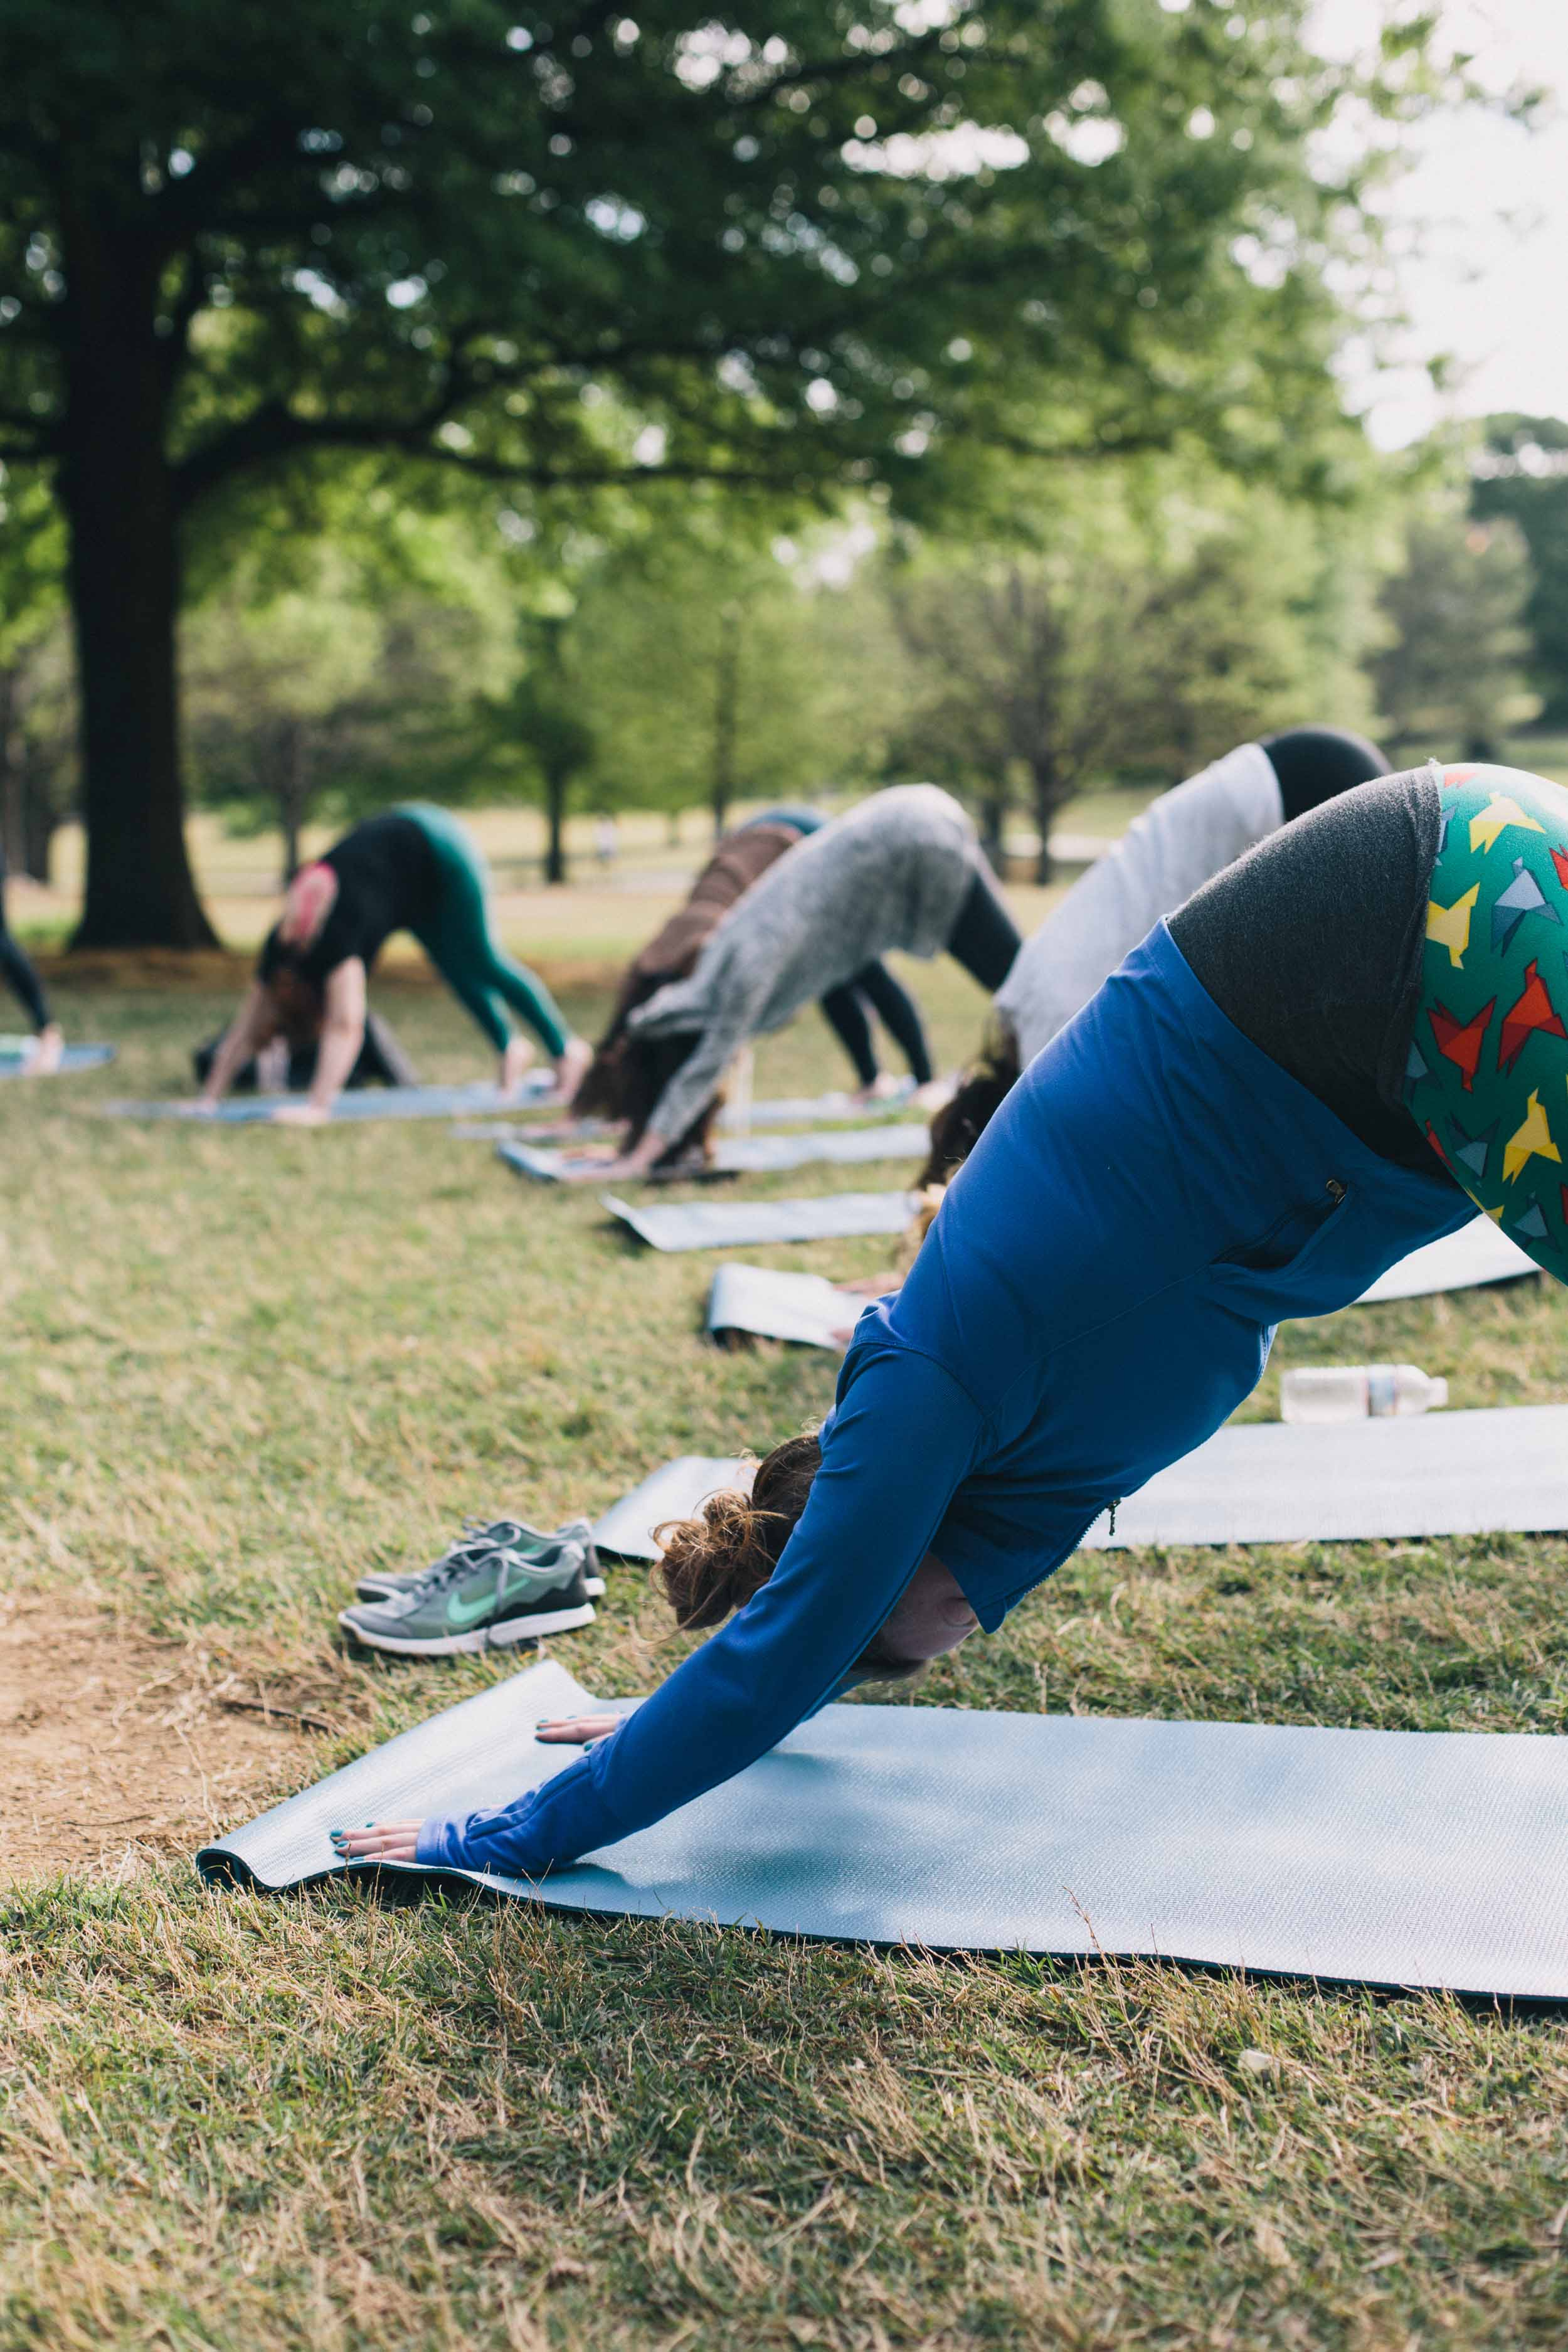 jimmy-rowalt-atlanta-event-photography-yoga-011.jpg